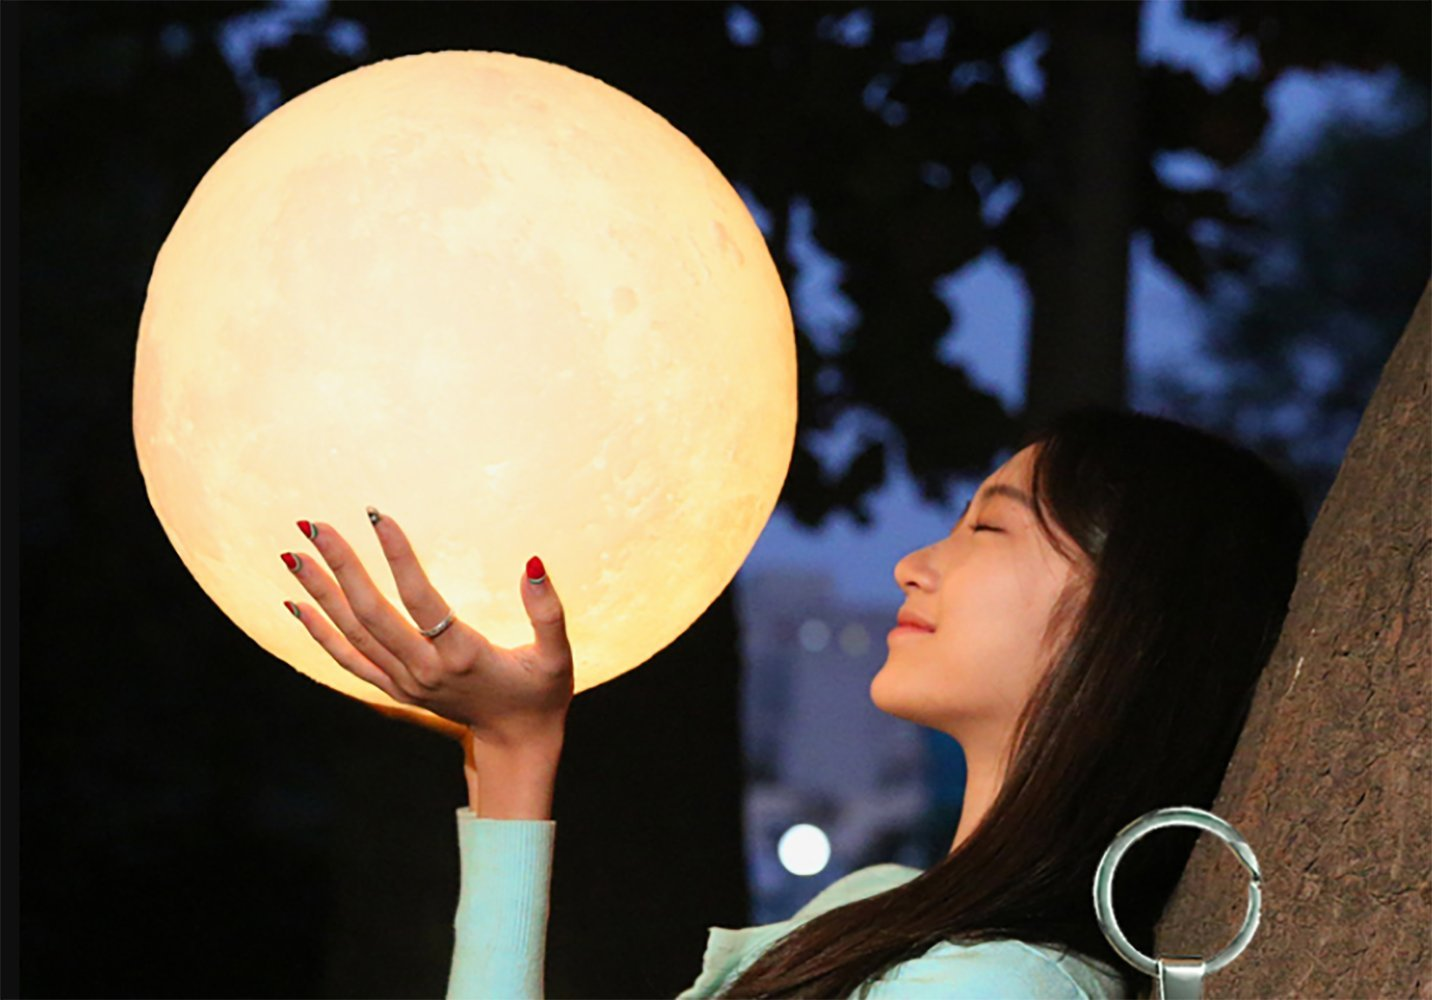 3D LED Lunar Moon Night Light Lamp Touch Control Warm/Cool Color USB Charging Moon Lantern With Wood Holder Home Decor 7.09inch